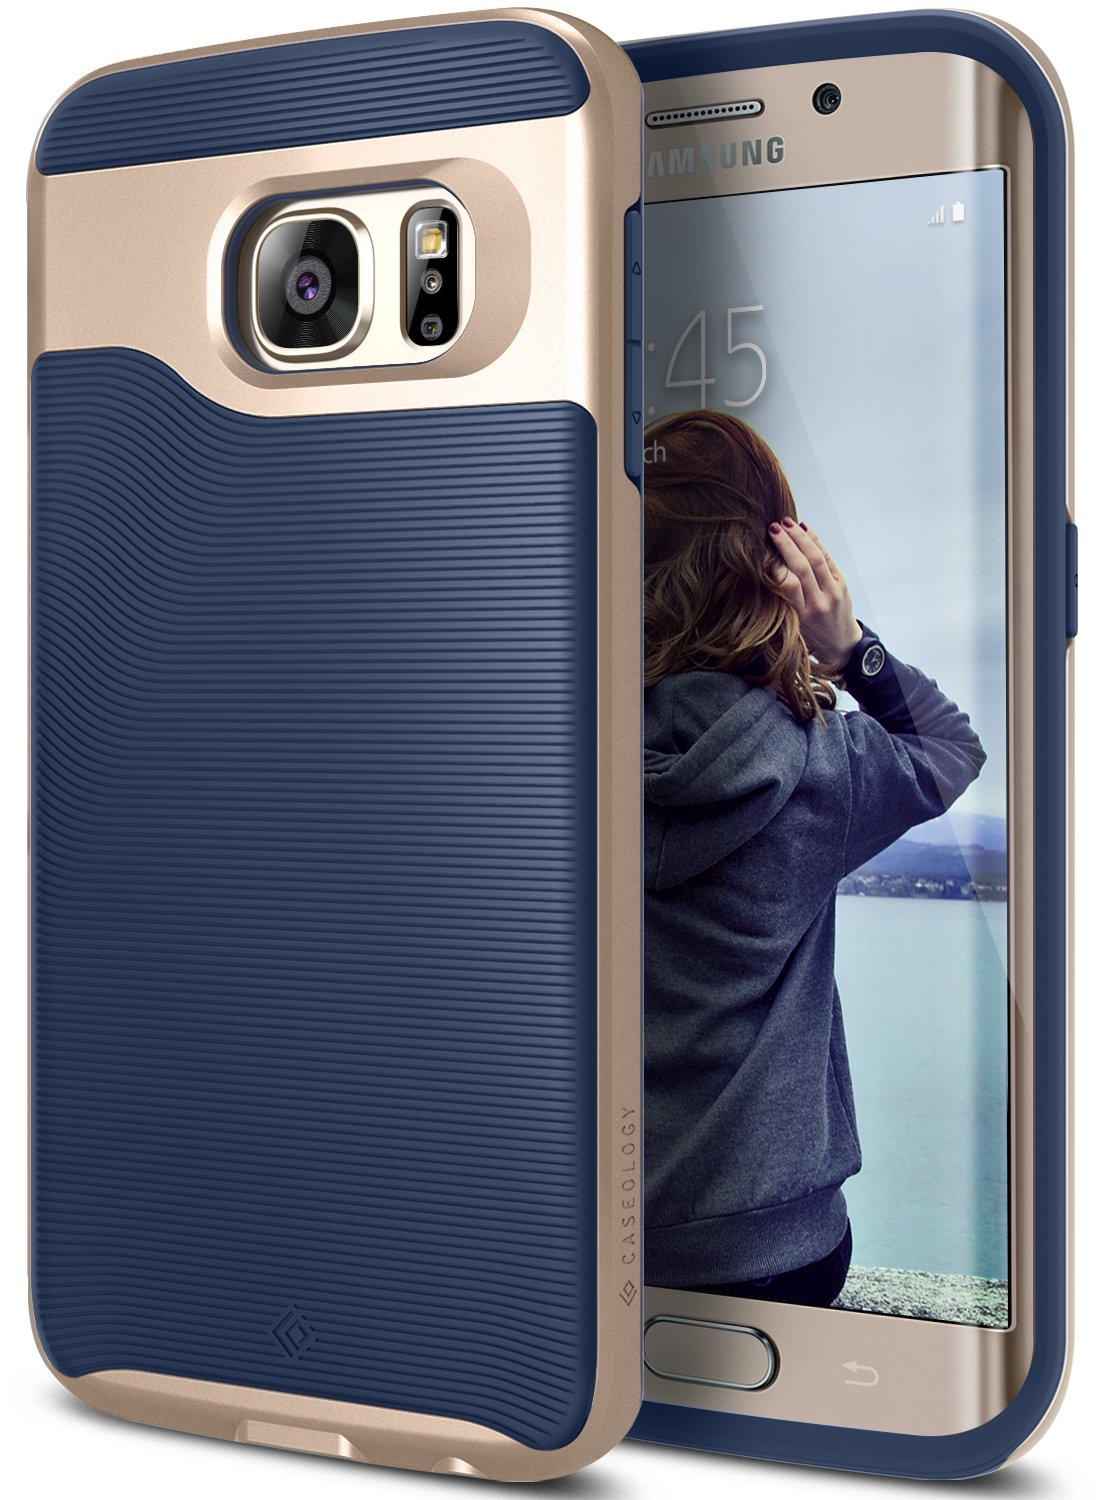 Amazon galaxy s6 edge case caseology wavelength series wavelength series slim dual layer protective textured grip corner cushion design for samsung galaxy s6 edge navy blue cell phones accessories sciox Gallery